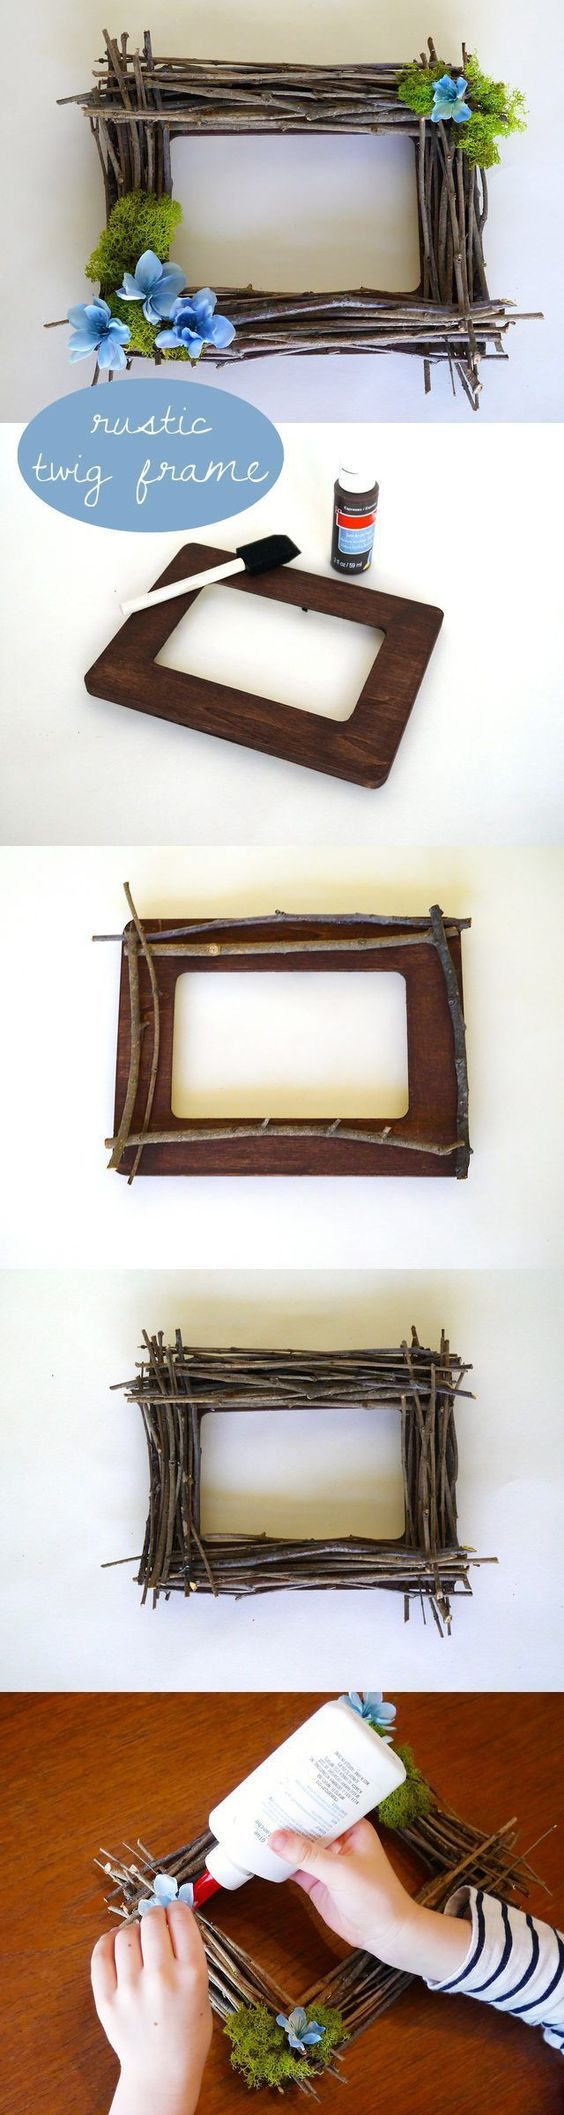 diy rustic twig frame craft